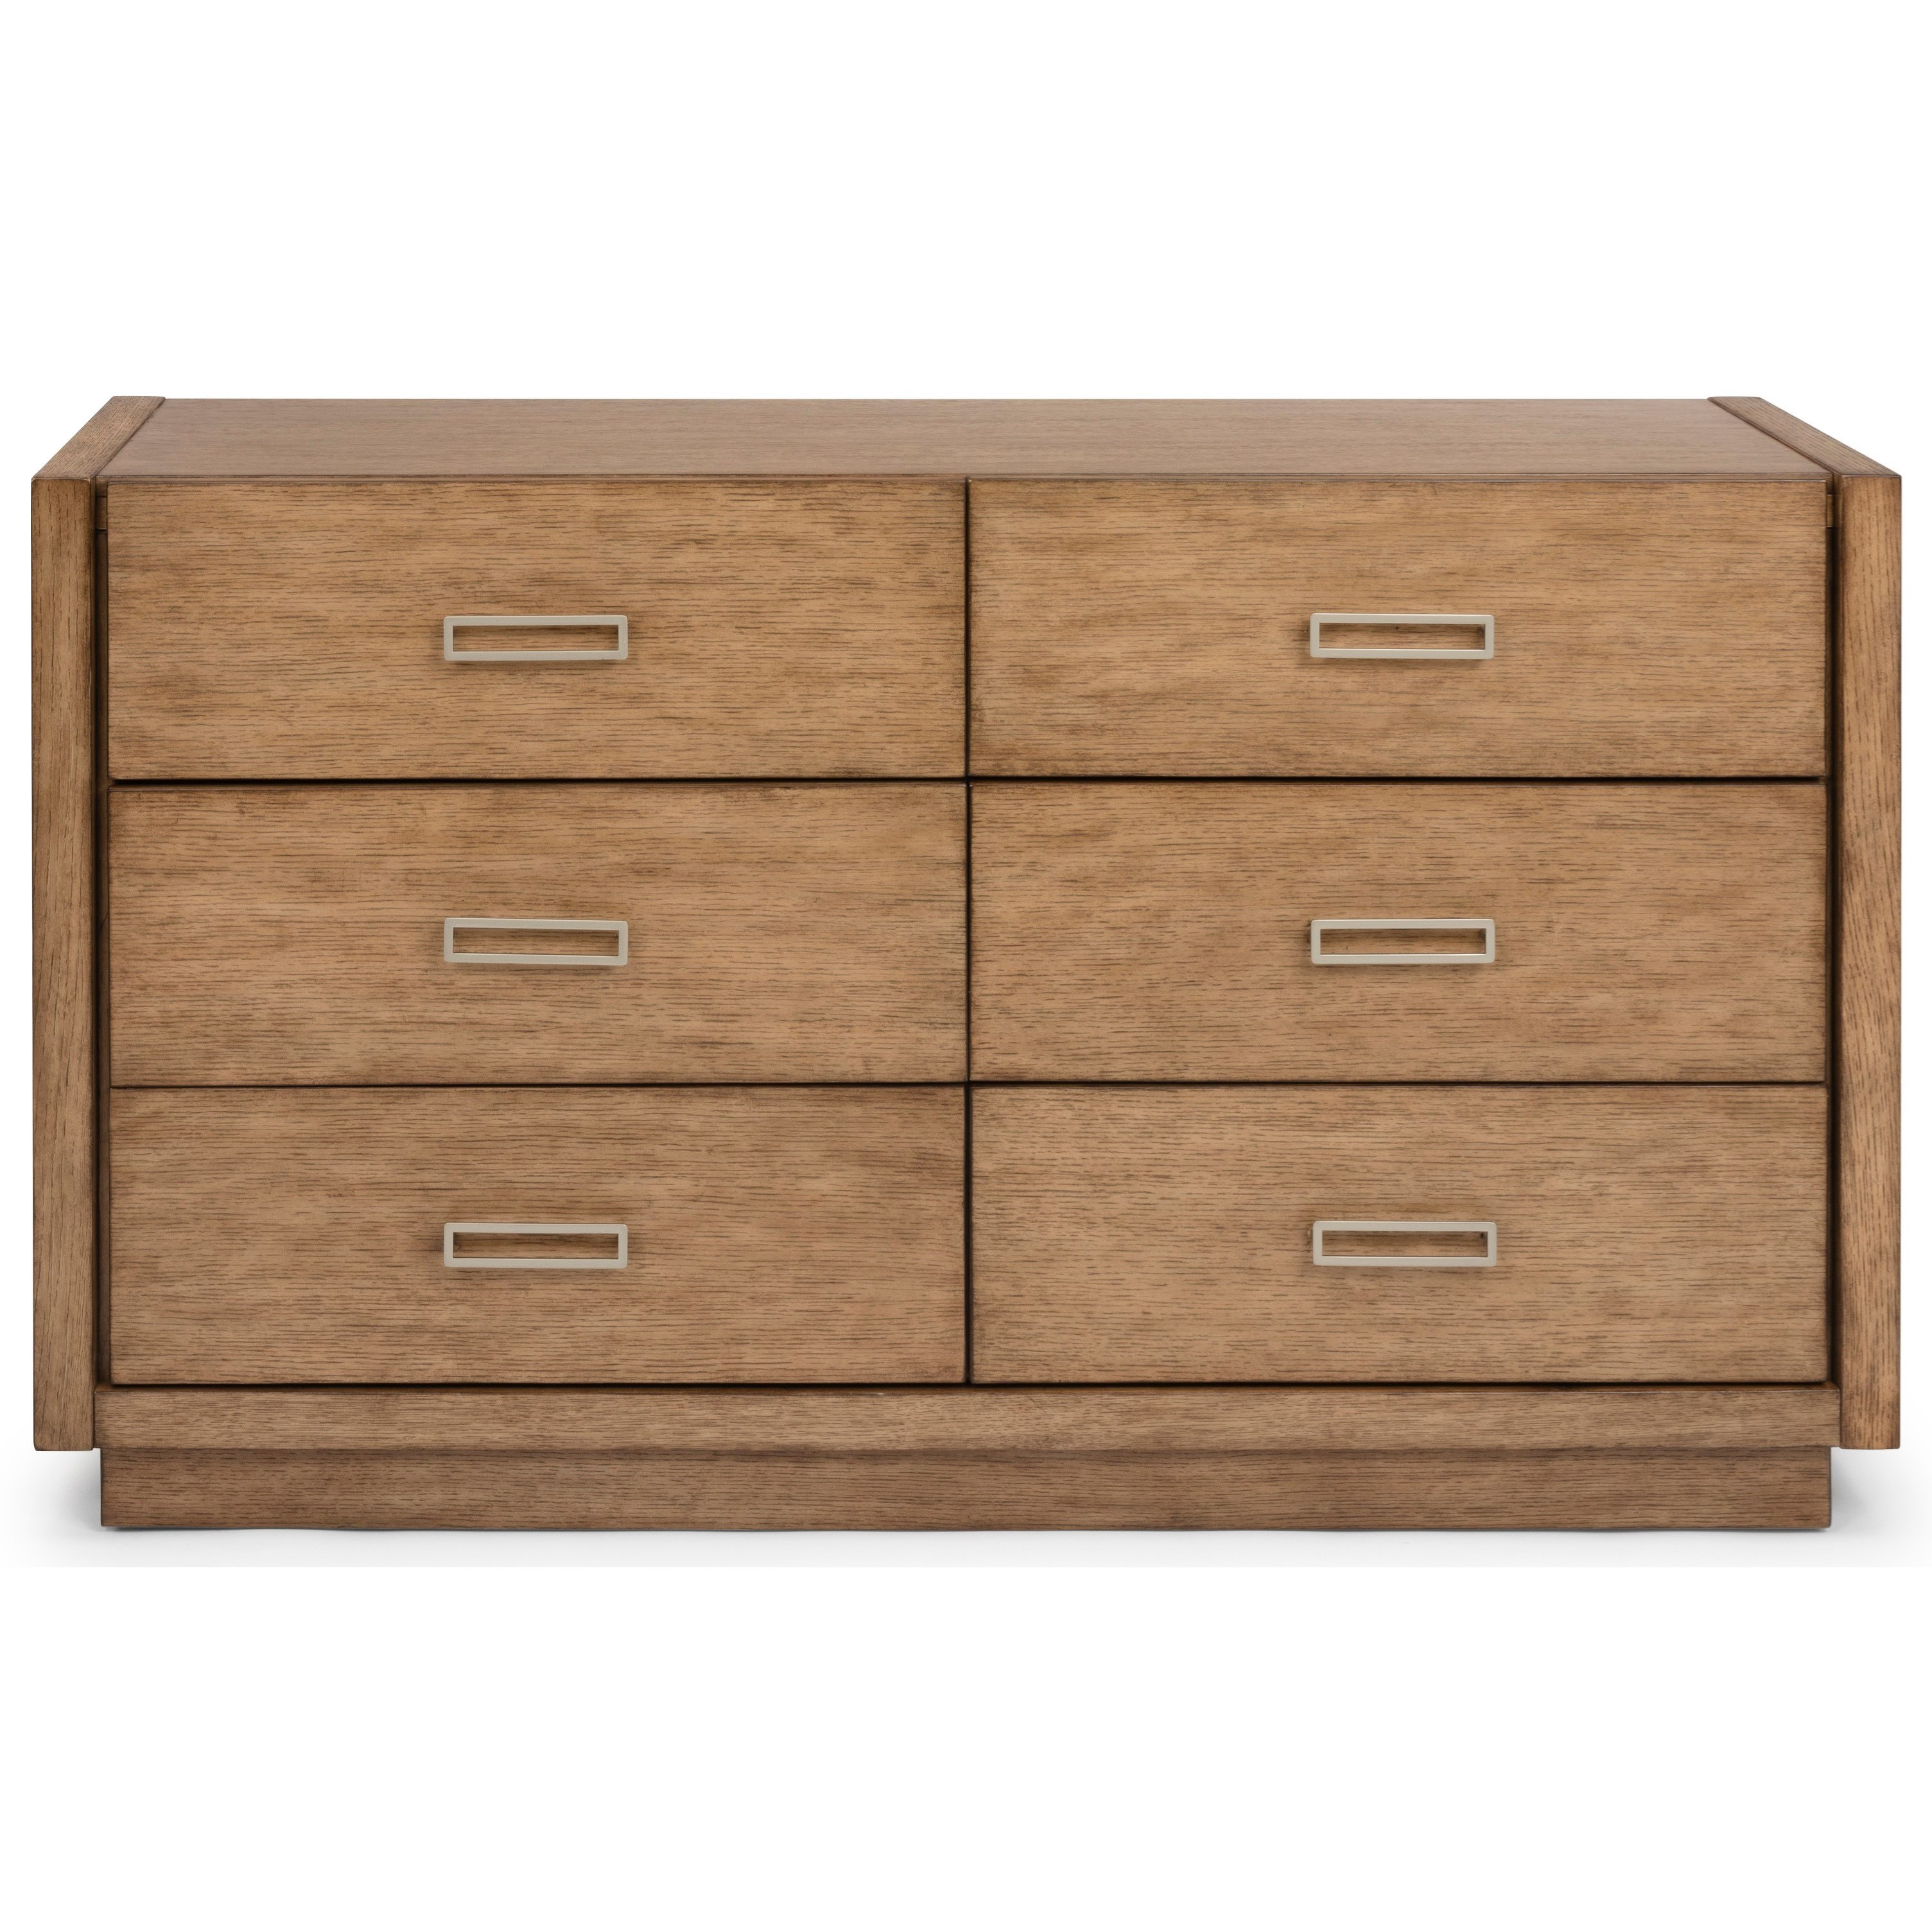 Big Sur Dresser by Homestyles at Value City Furniture